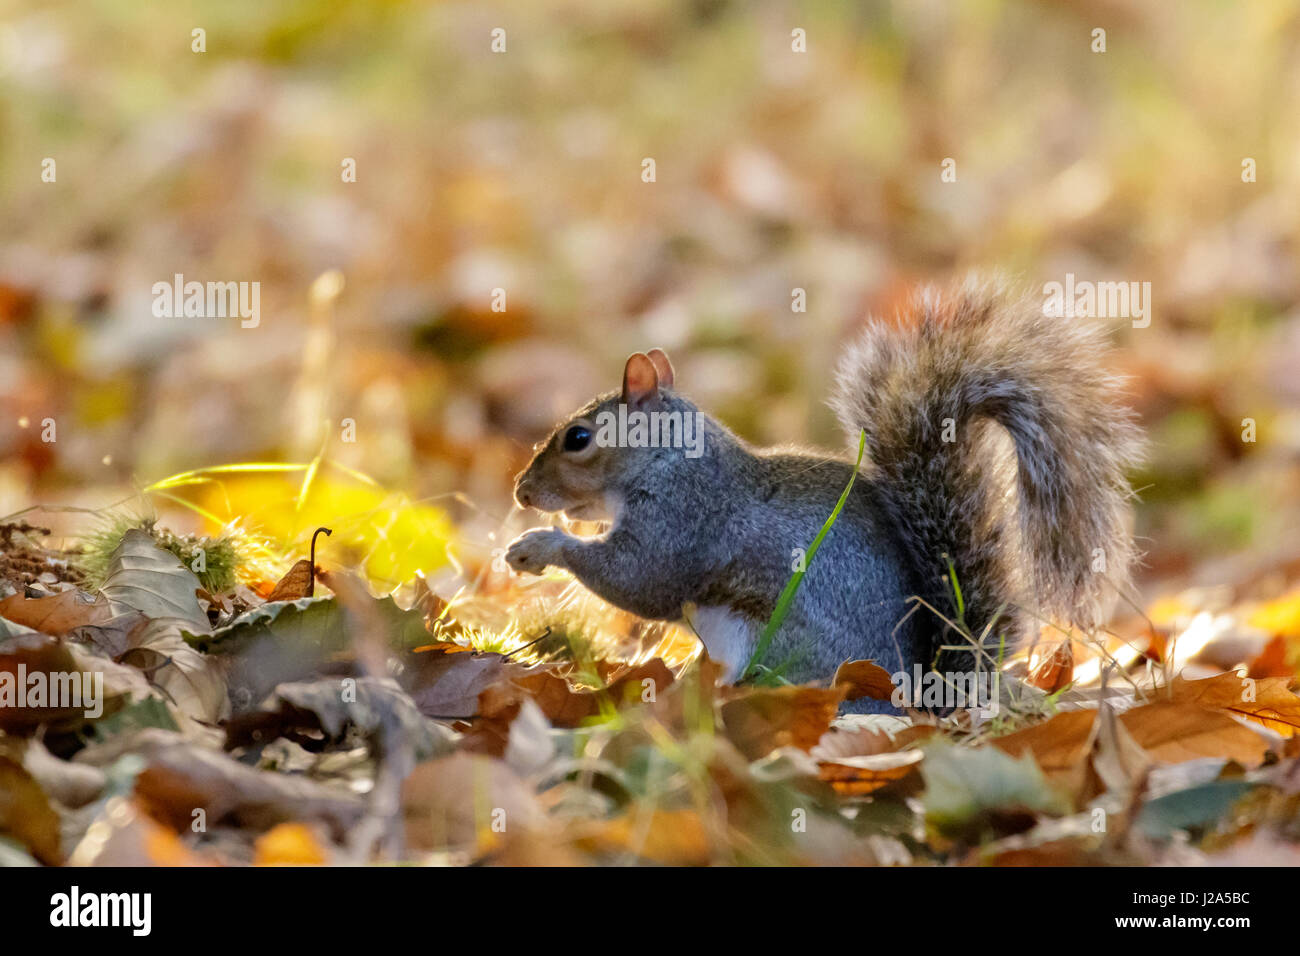 Grey or Gray Squirrel (Sciurus carolinensis) foraging for Sweet Chestnuts, in an autumn wood - Stock Image